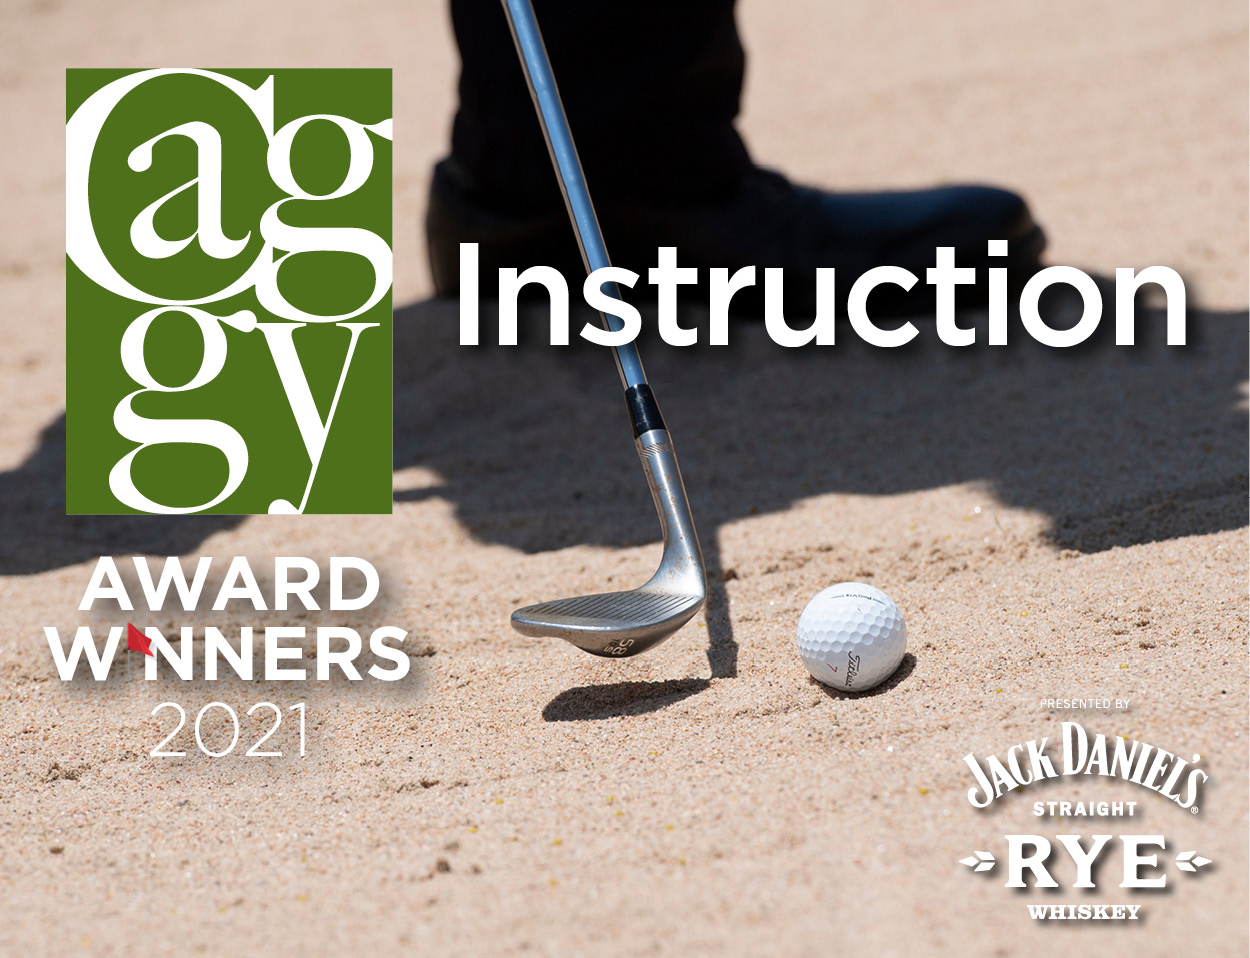 CAGGY Winners - Instruction